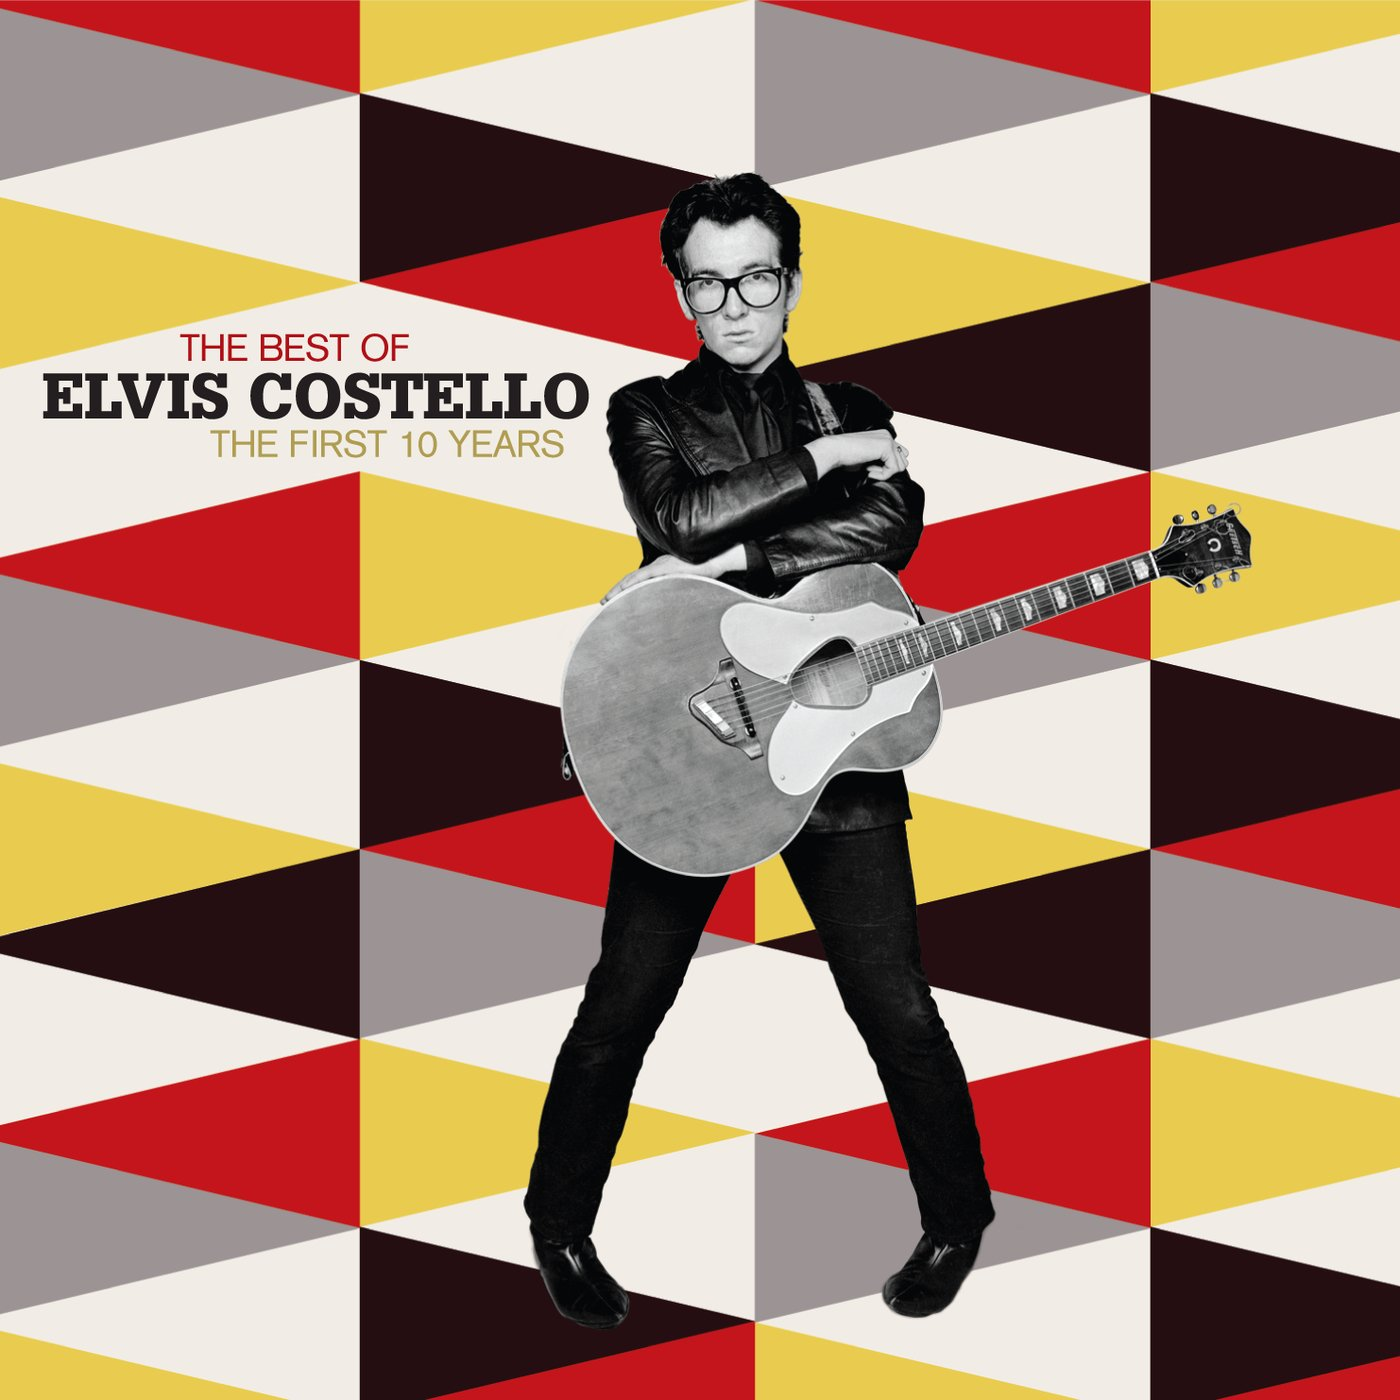 ELVIS COSTELLO personally signed THE BEST OF THE FIRST 10 YEARS CD cover